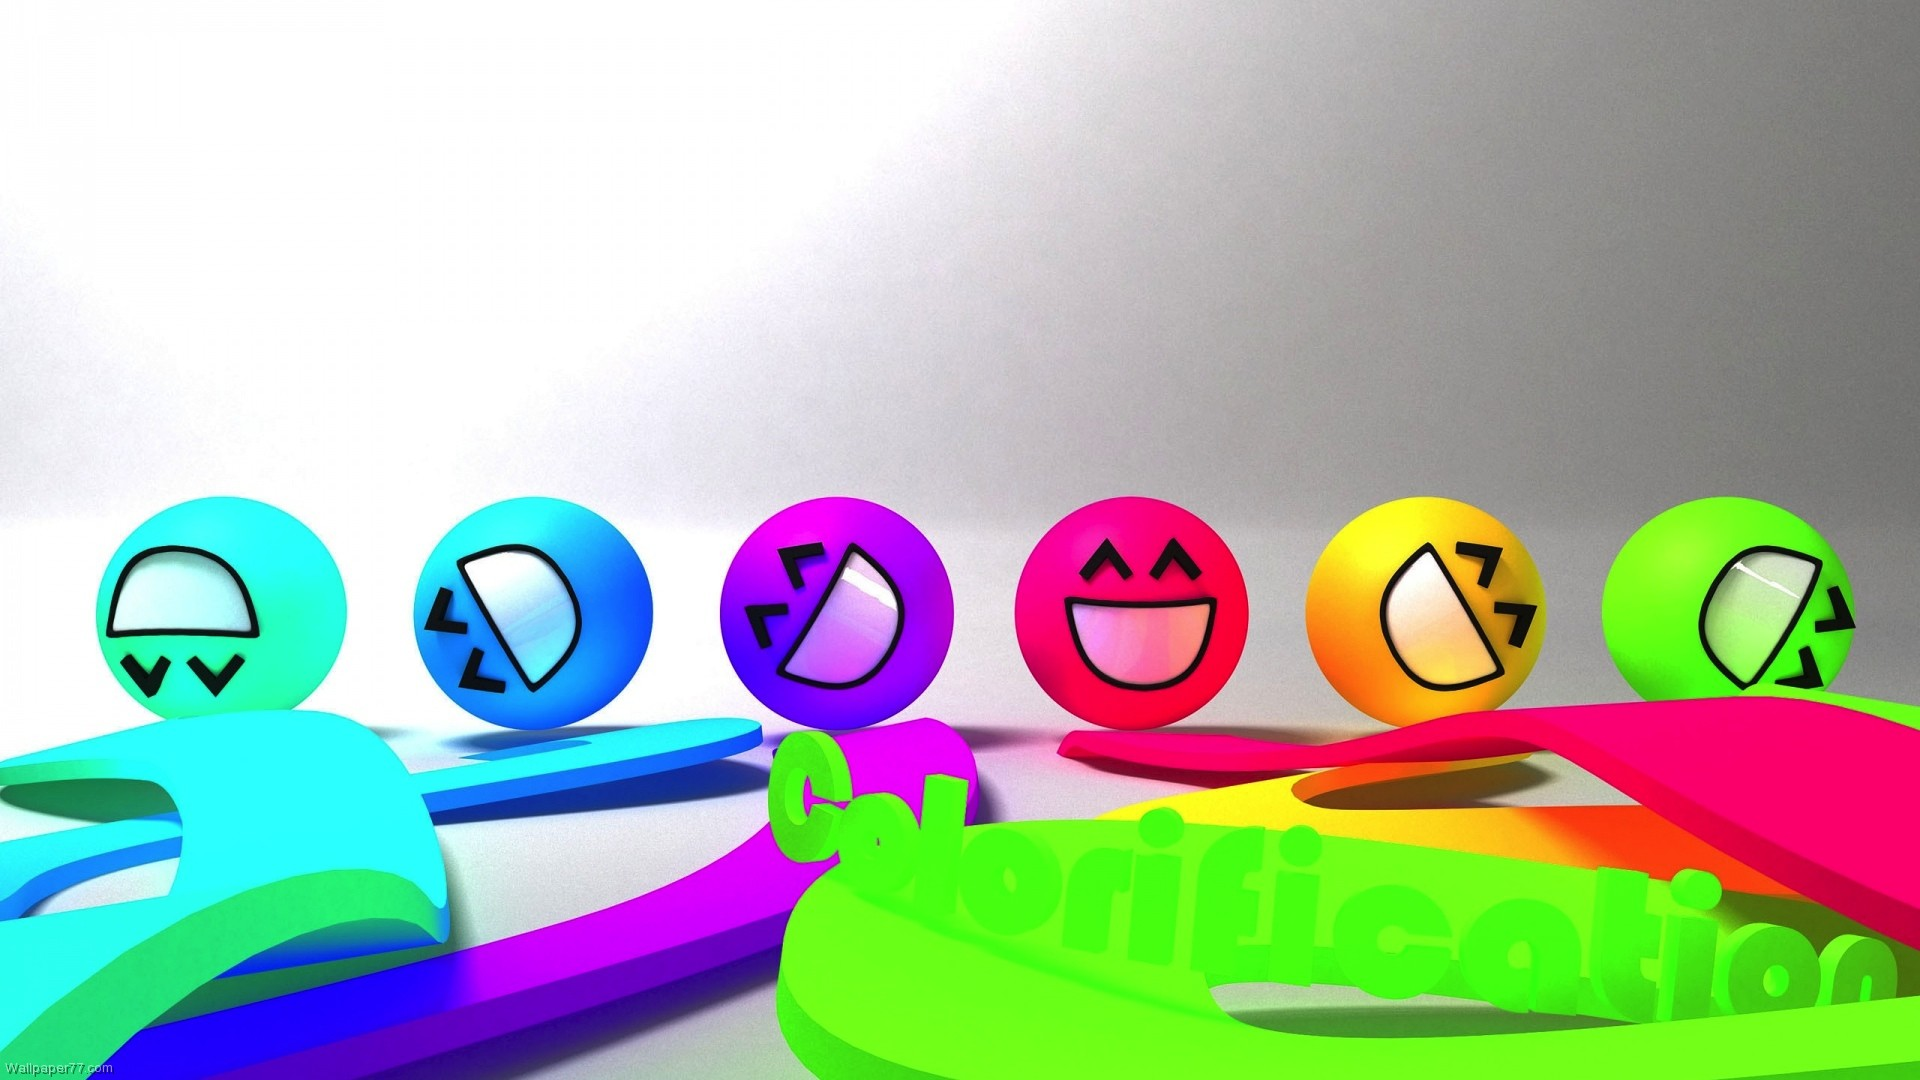 wallpapers cute smiley faces colorful wallpaper funny fun 1920x1080